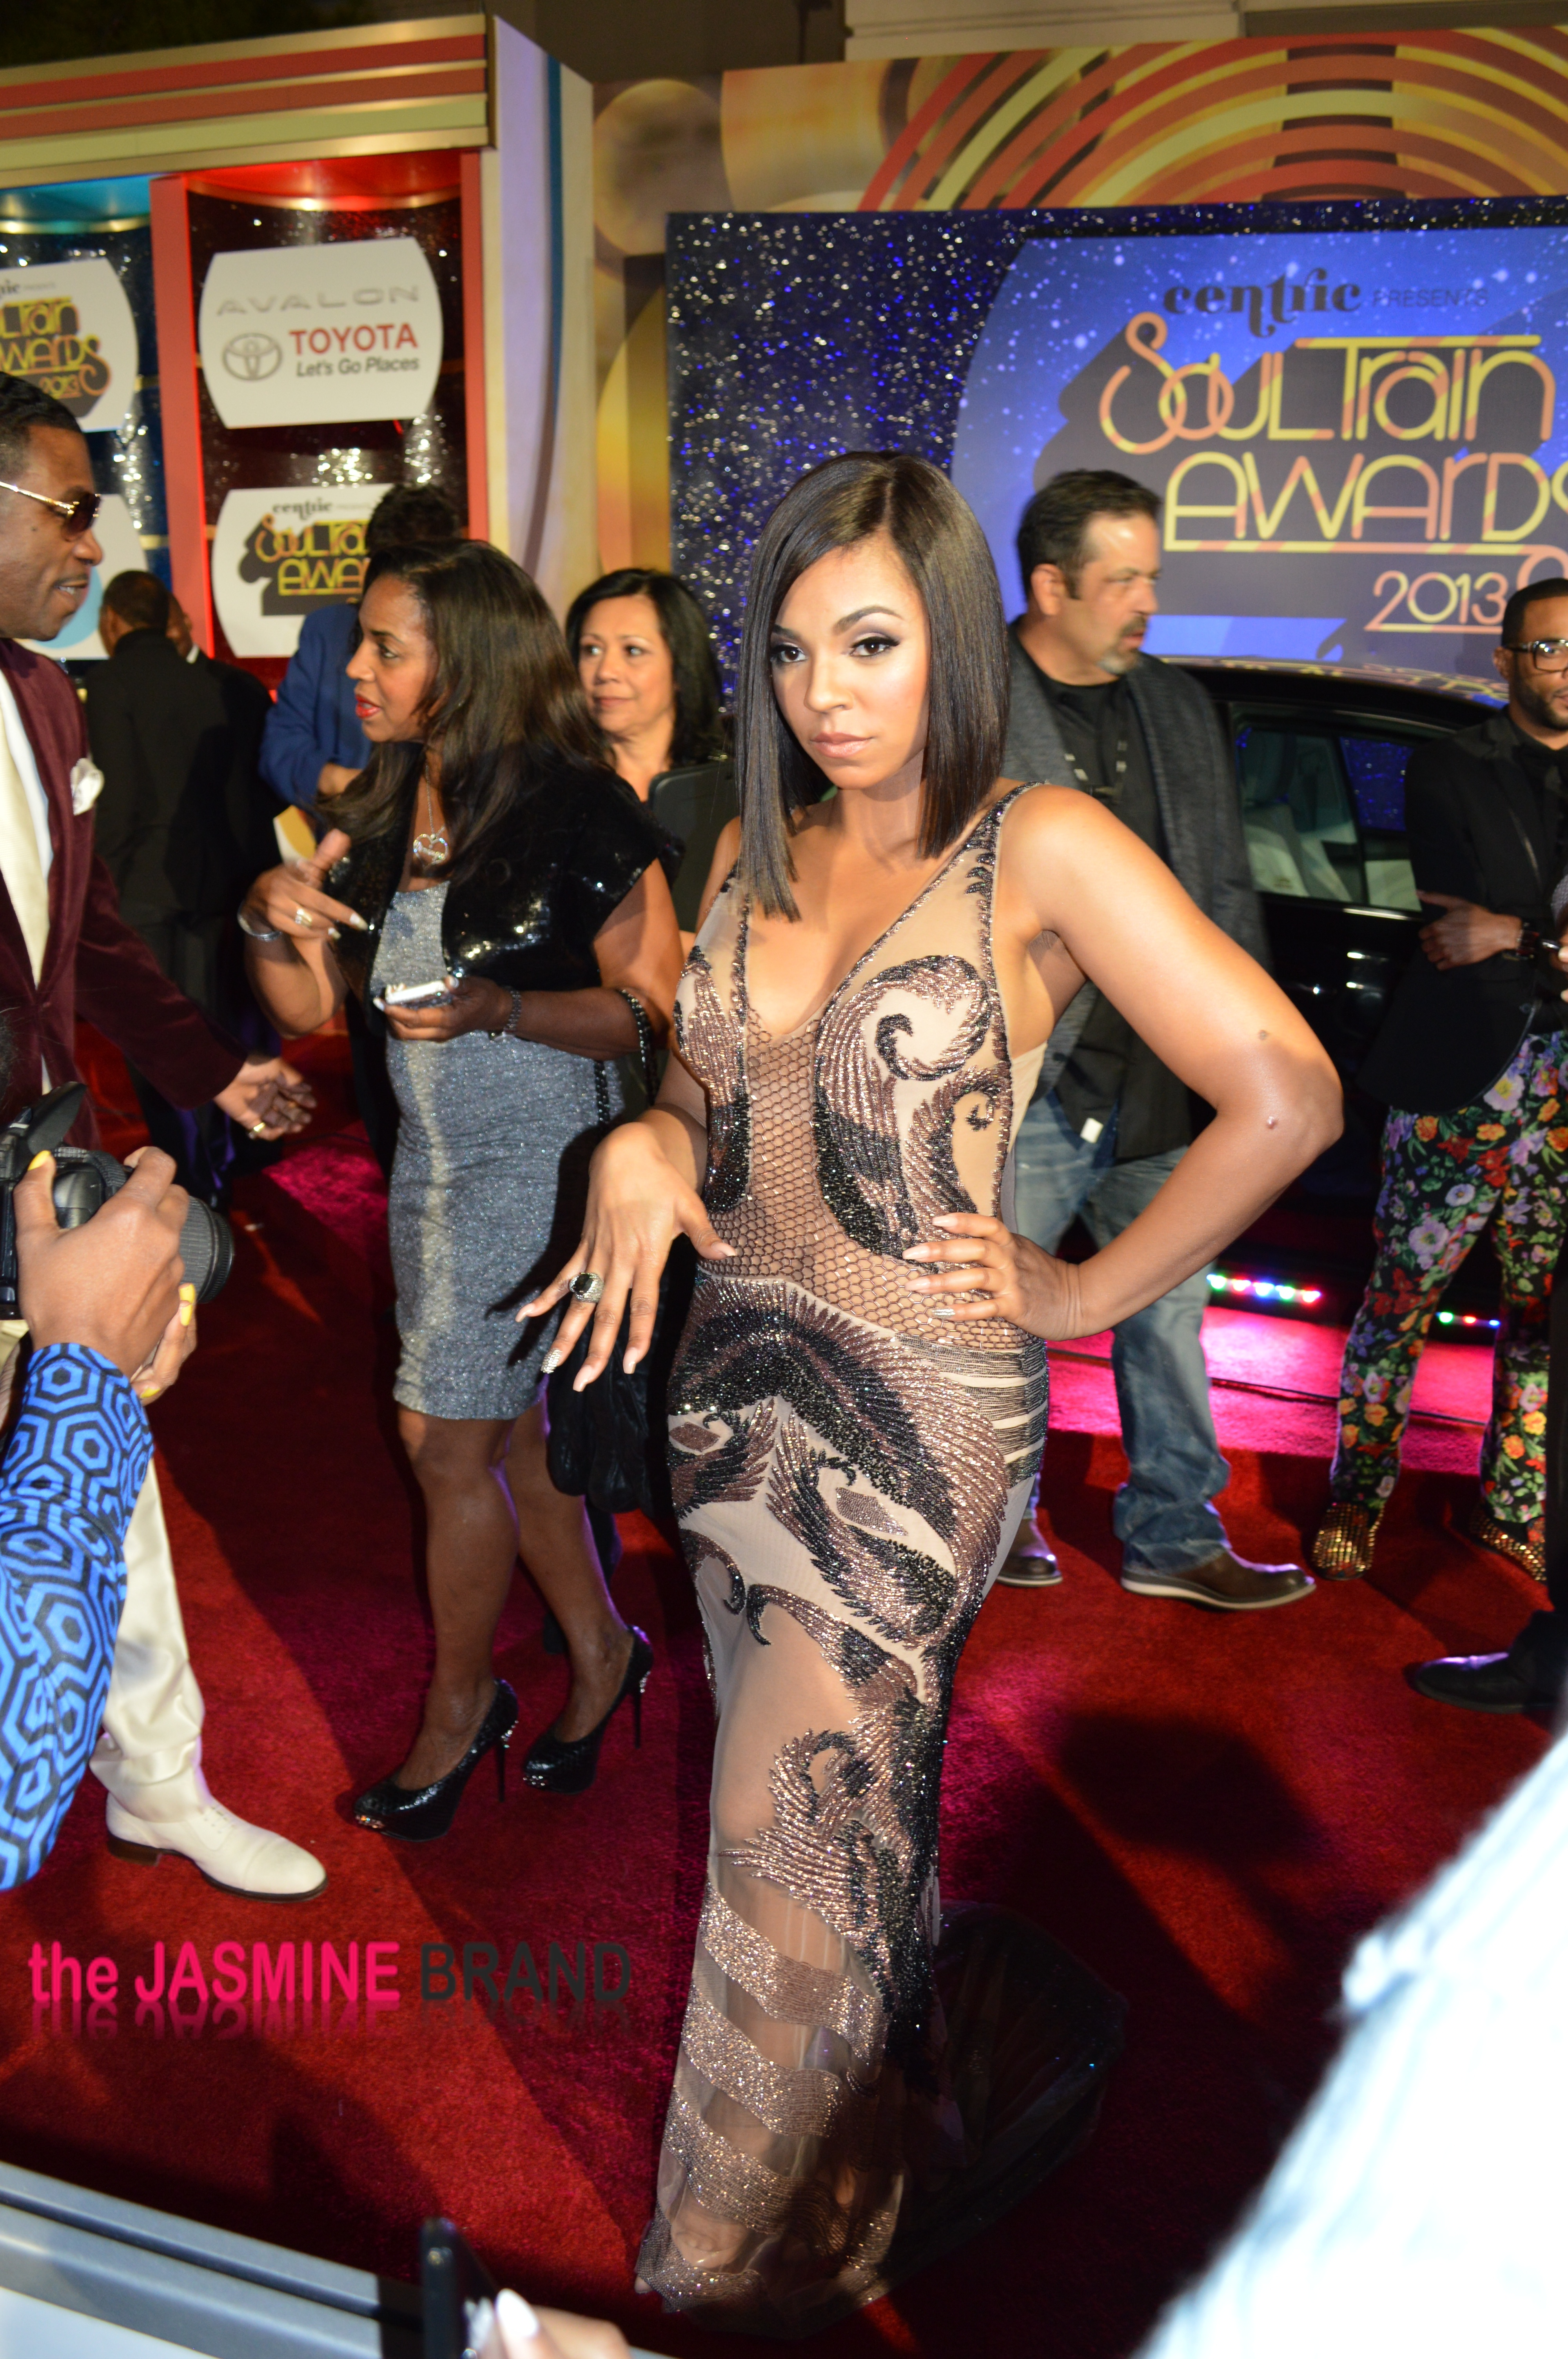 ashanti-soul train awards 2013-the jasmine brand